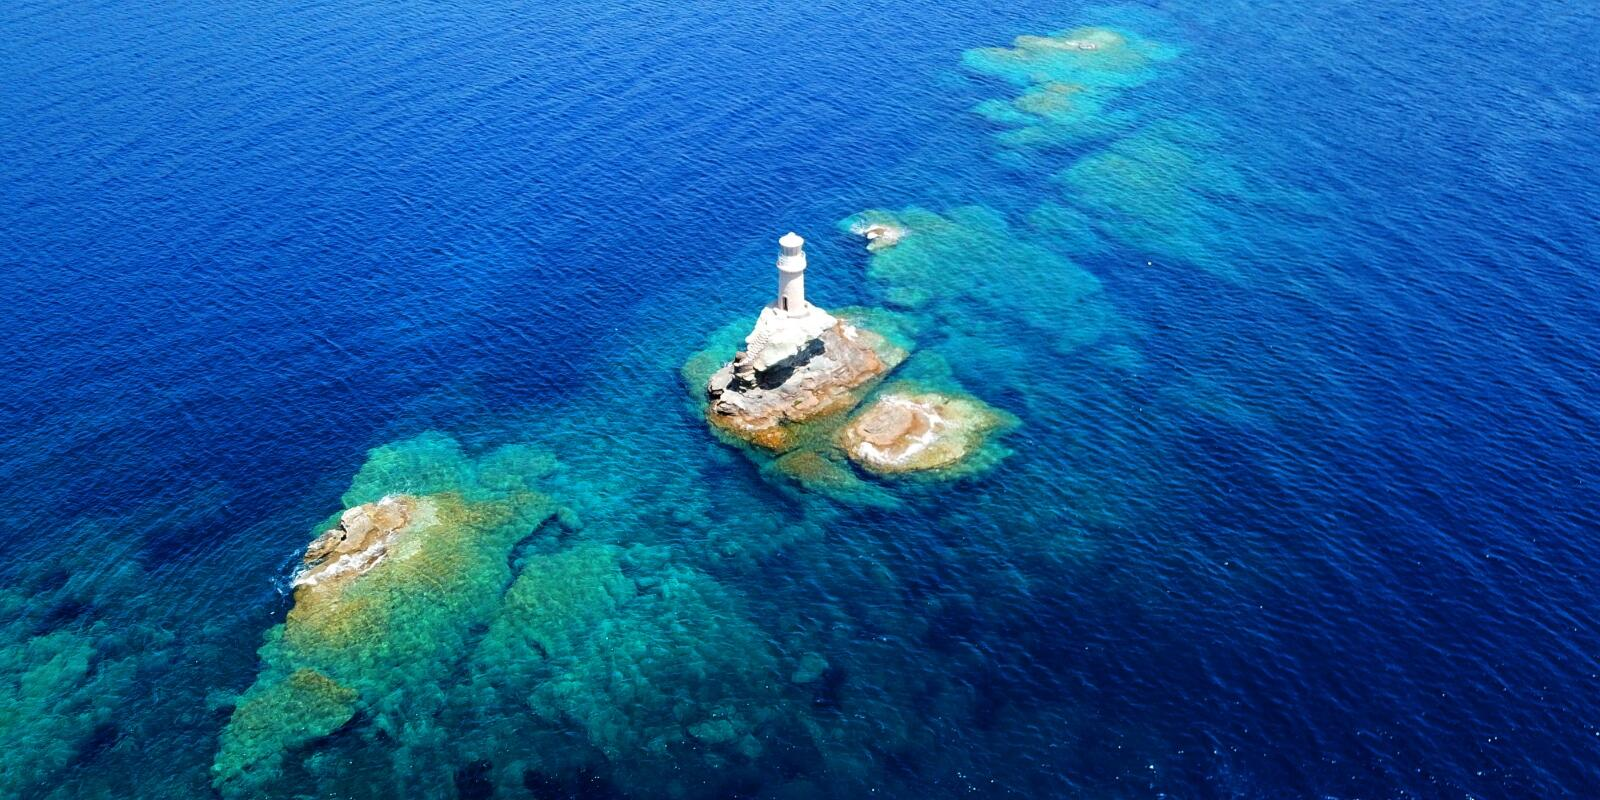 Naturist cruise: 7 nights - 6 days exploring 4-5 of the CYCLADES islands with experienced skipper